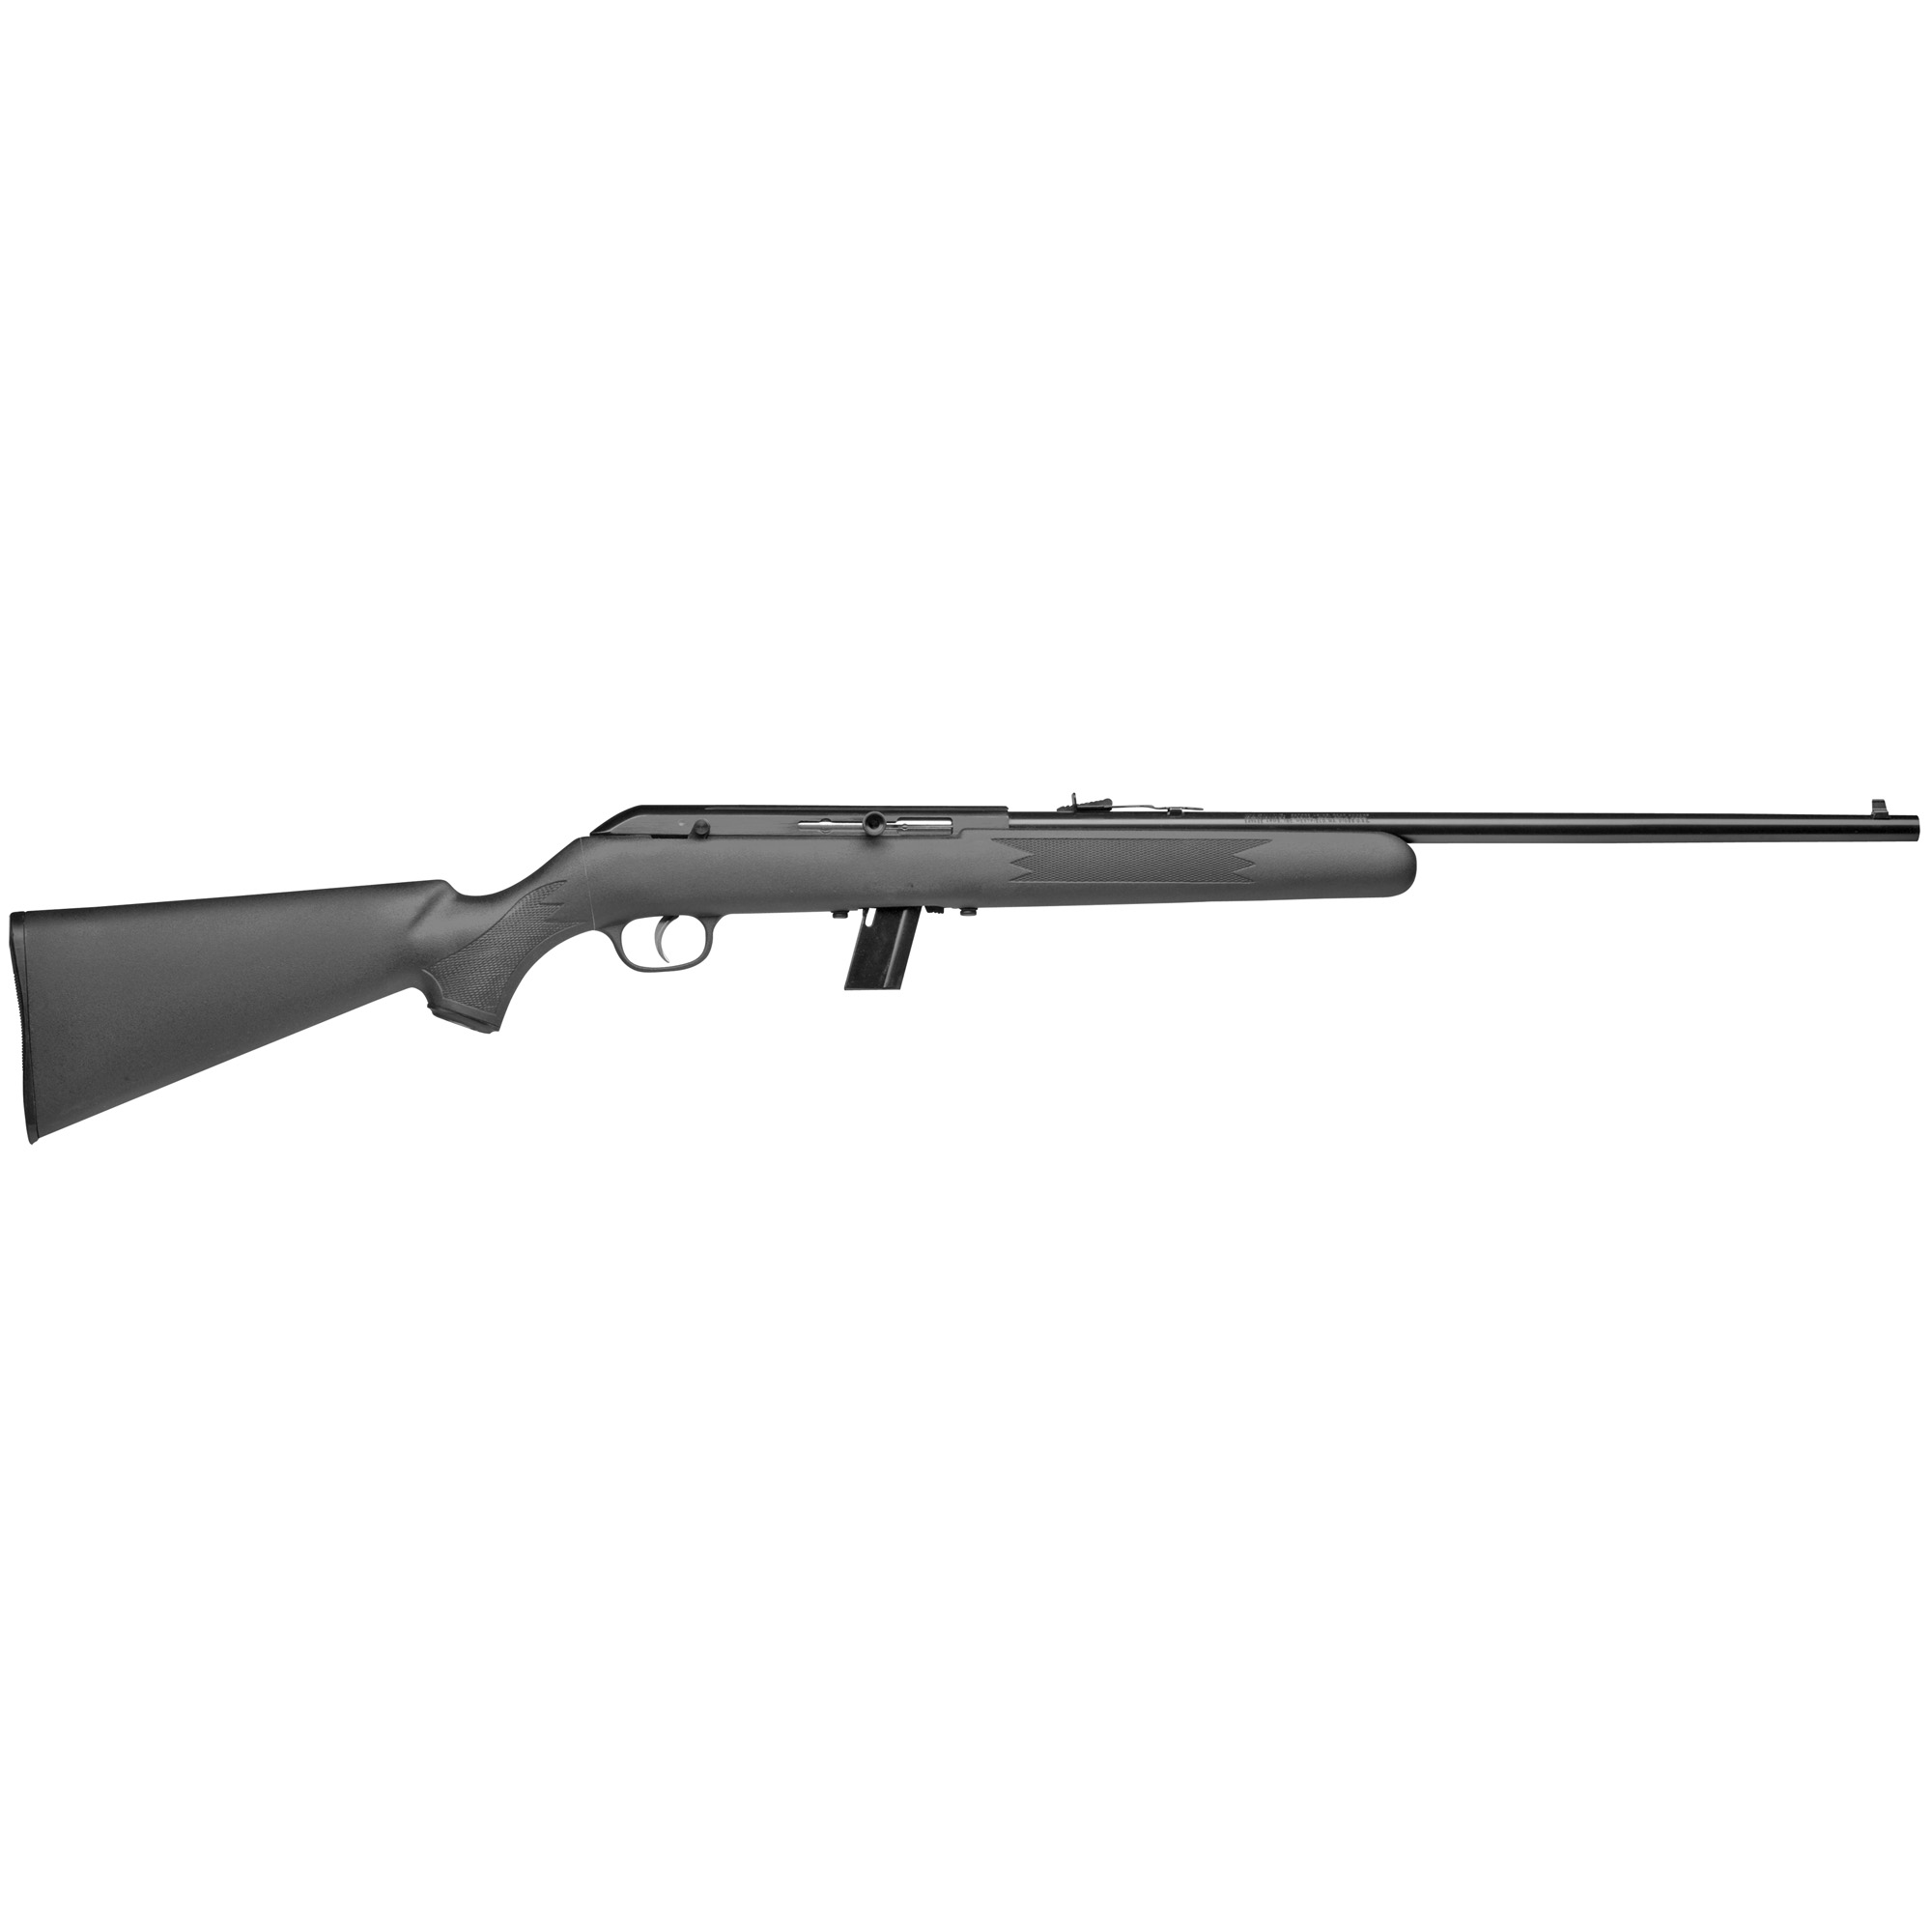 "The Model 64 combines Savage's legendary accuracy with a reliable"" straight-blowback semi-automatic action fed by a detachable 10-round box magazine."